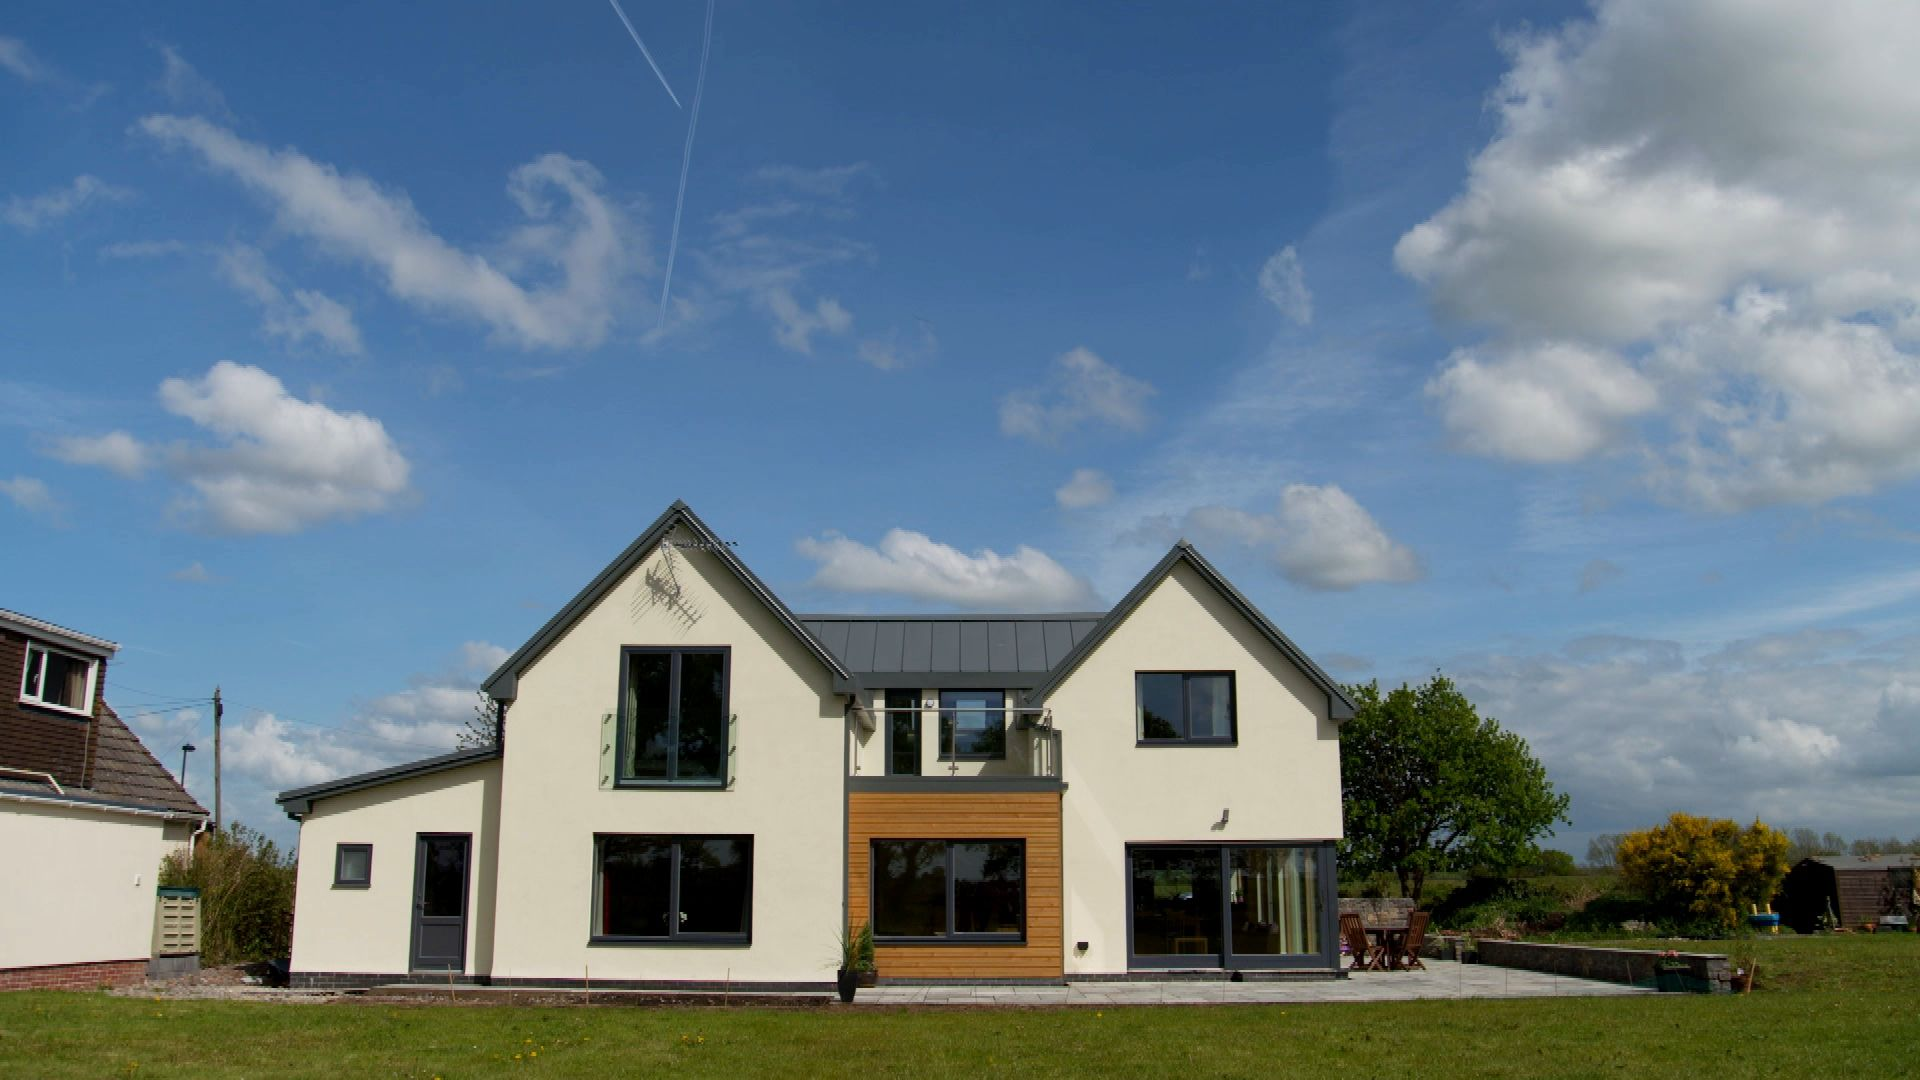 Architectural designer Charlie Luxton helps people build dream homes